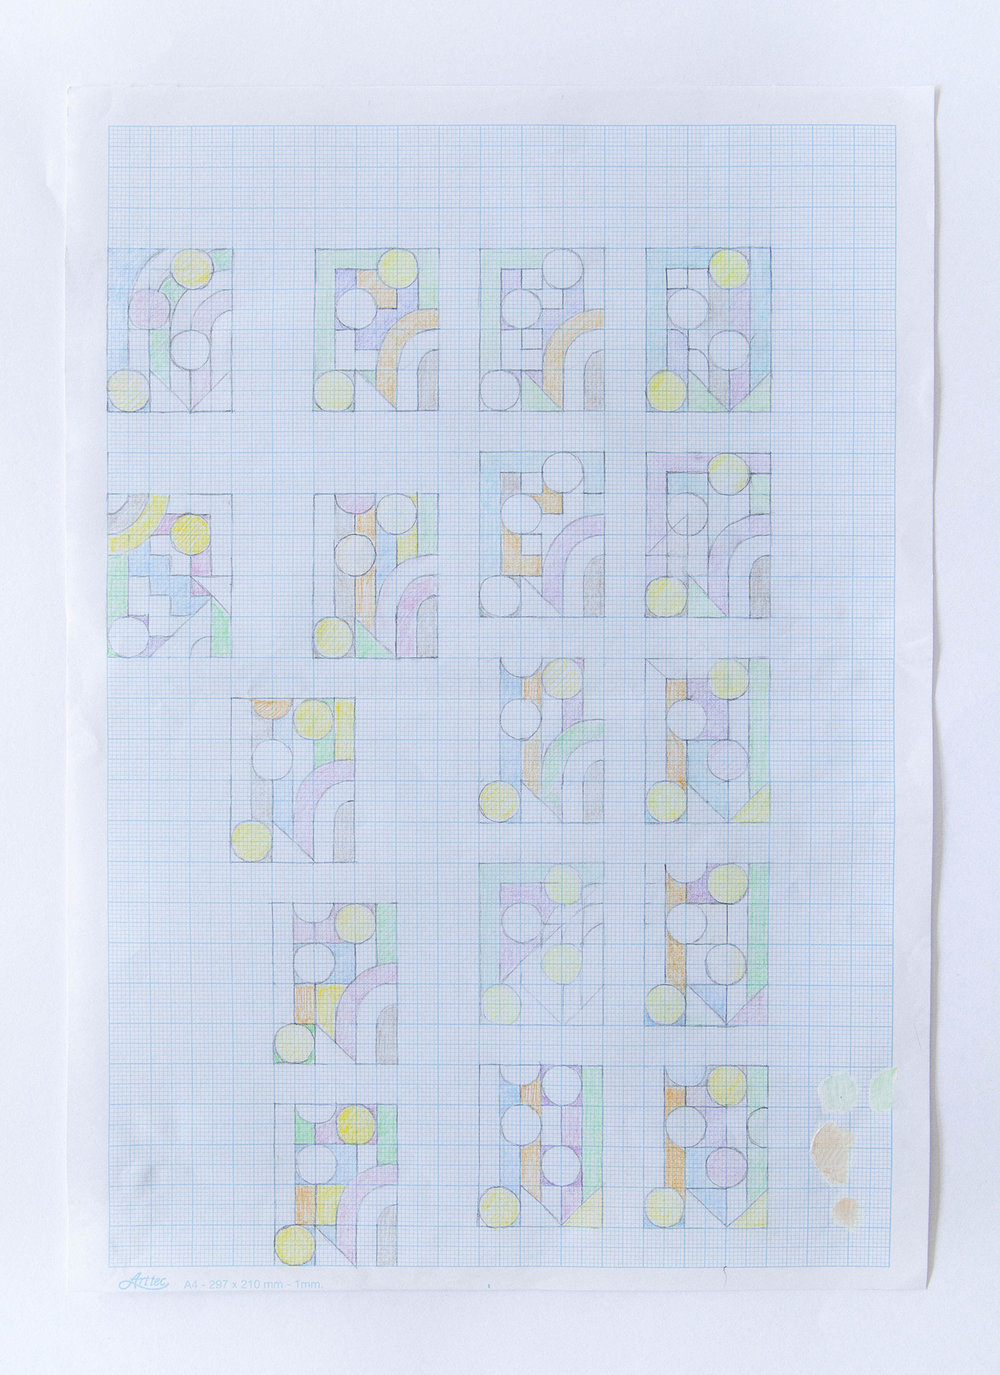 Untitled (study for pattern making)